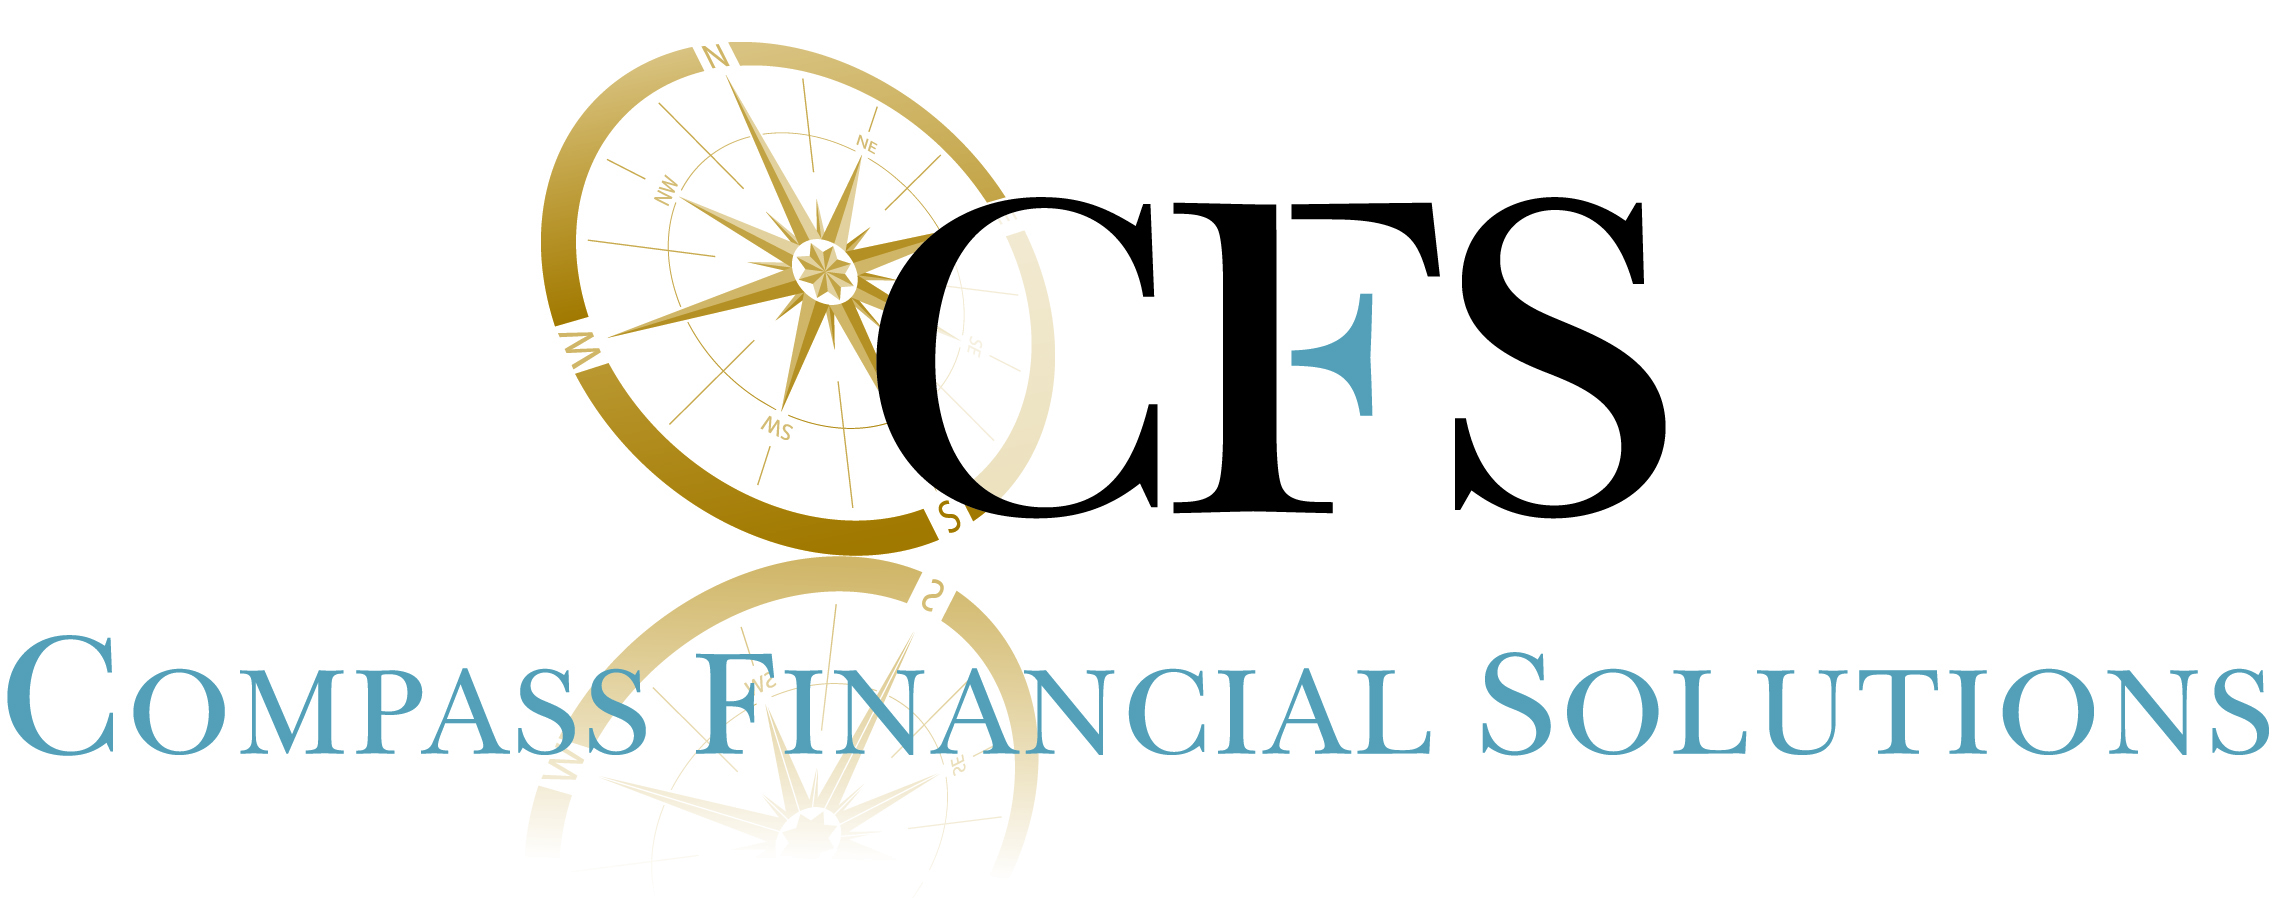 Compass Financial Solutions Logo